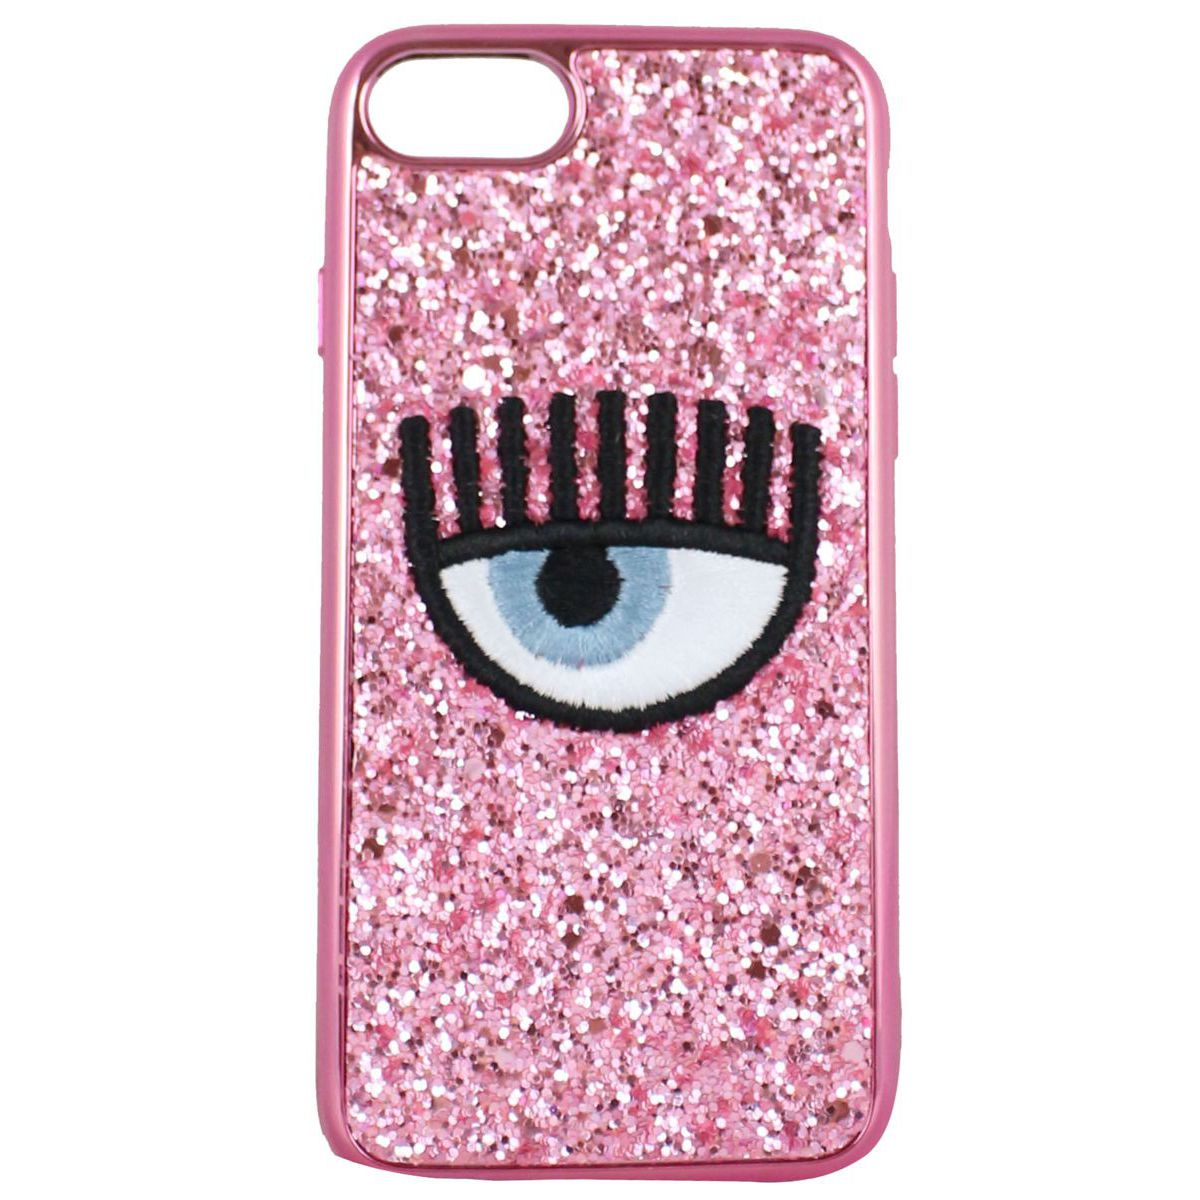 Cover logo Iphone 7/8 Rosa CHIARA FERRAGNI